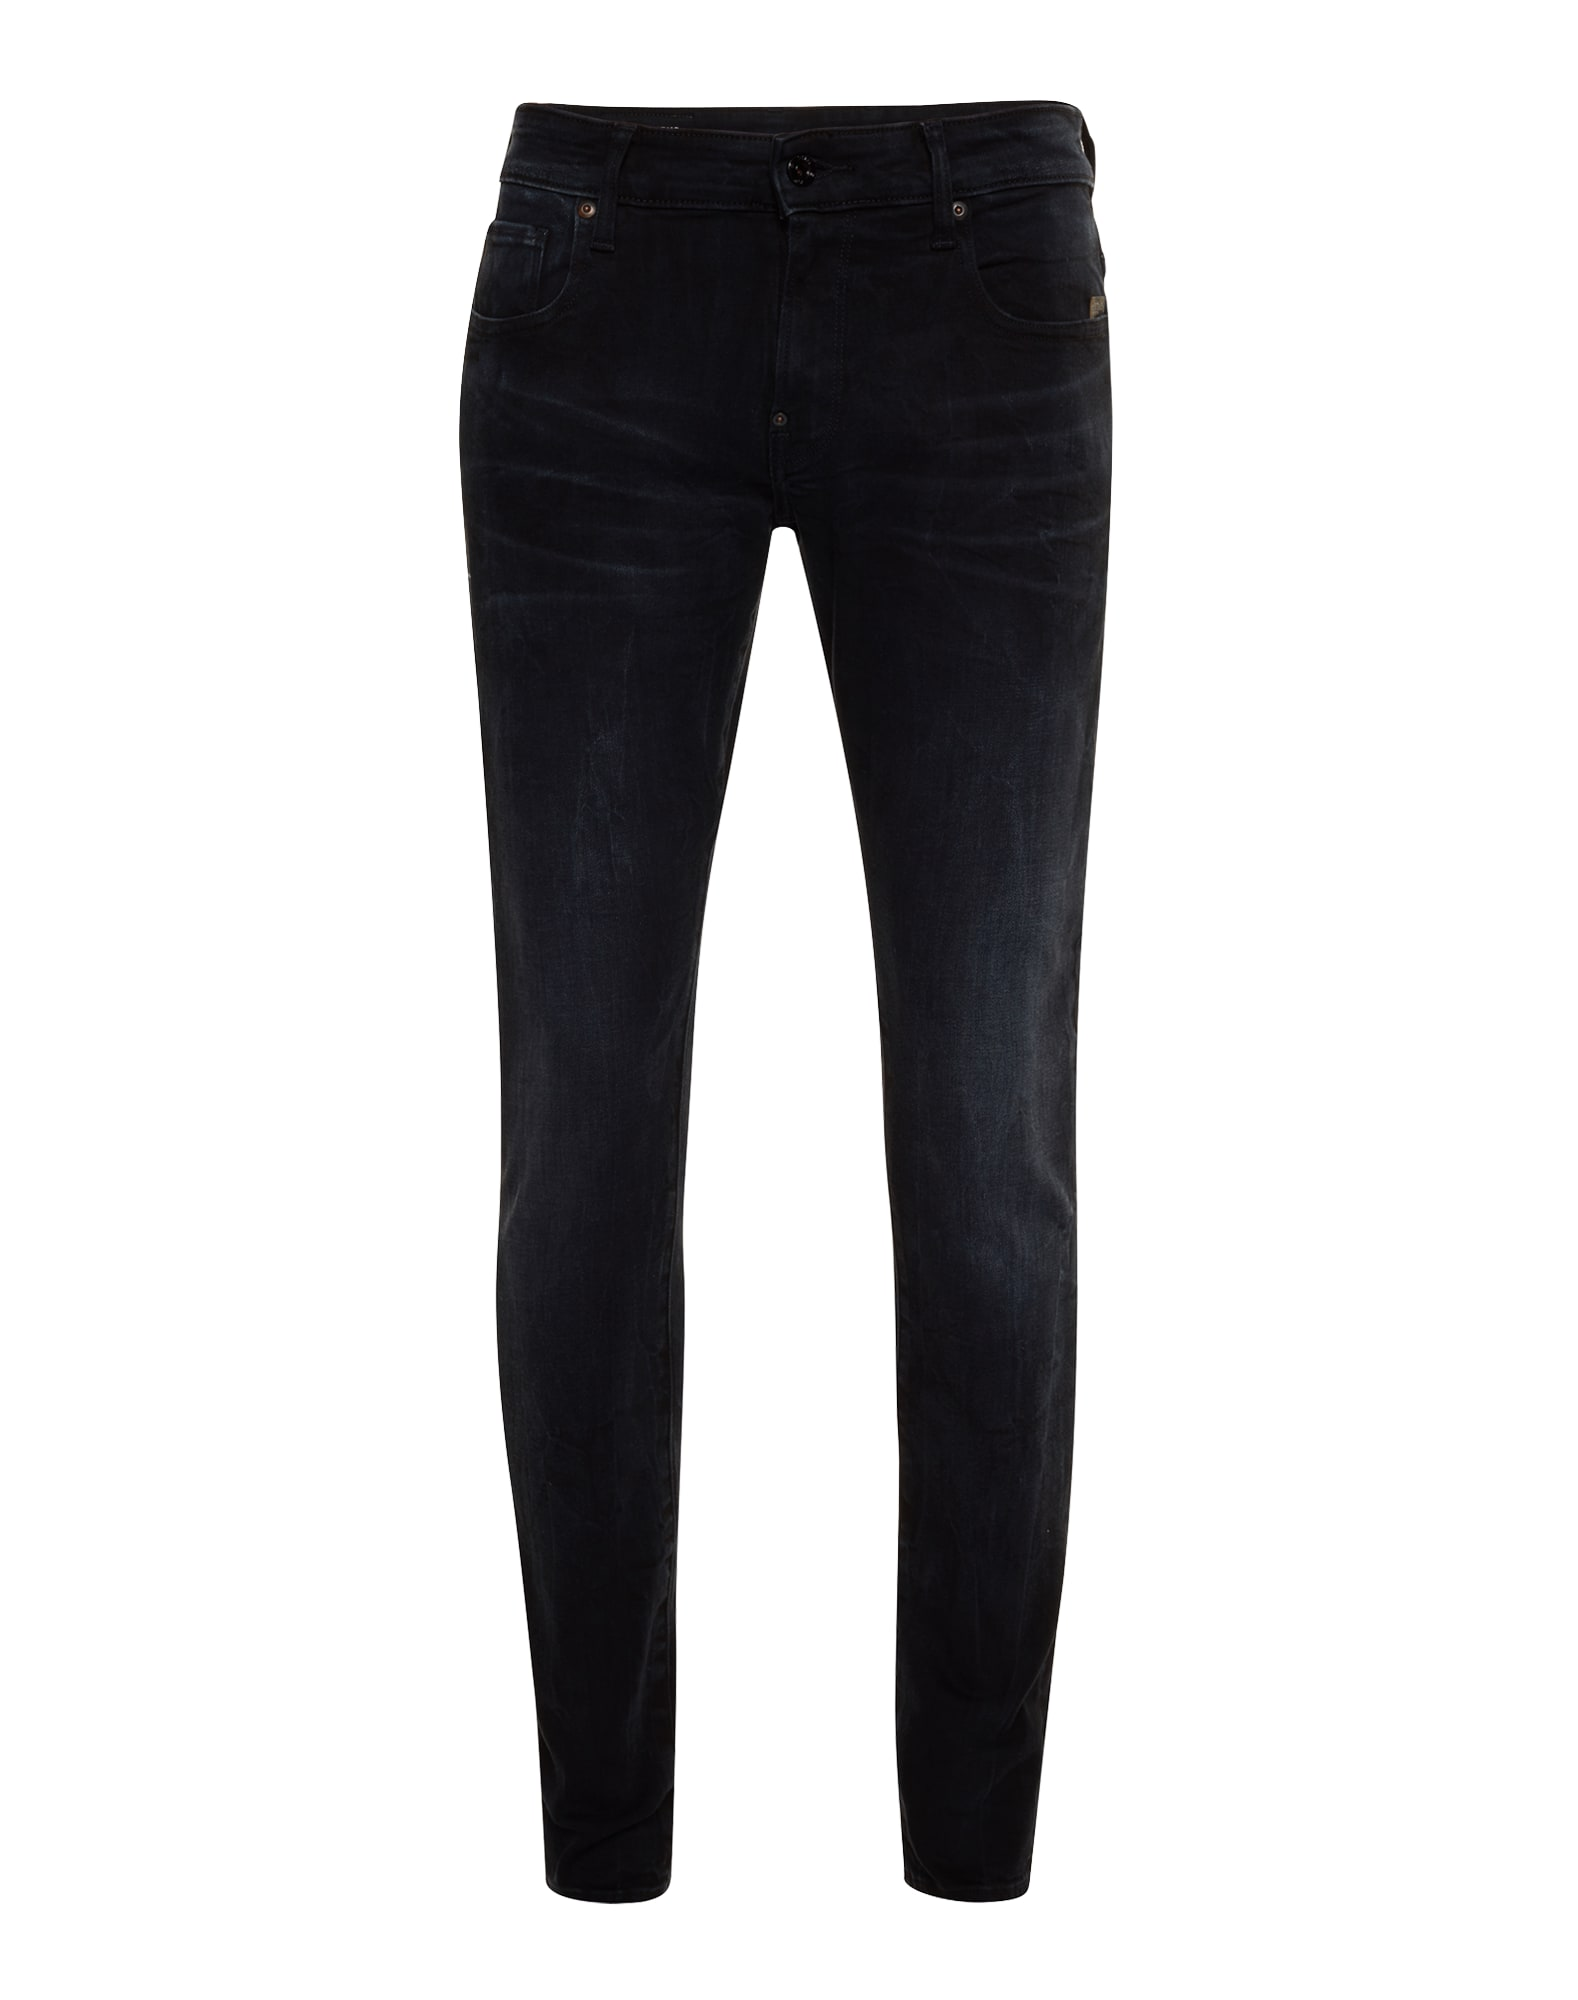 G-STAR RAW Heren Jeans Revend Super Slim black denim